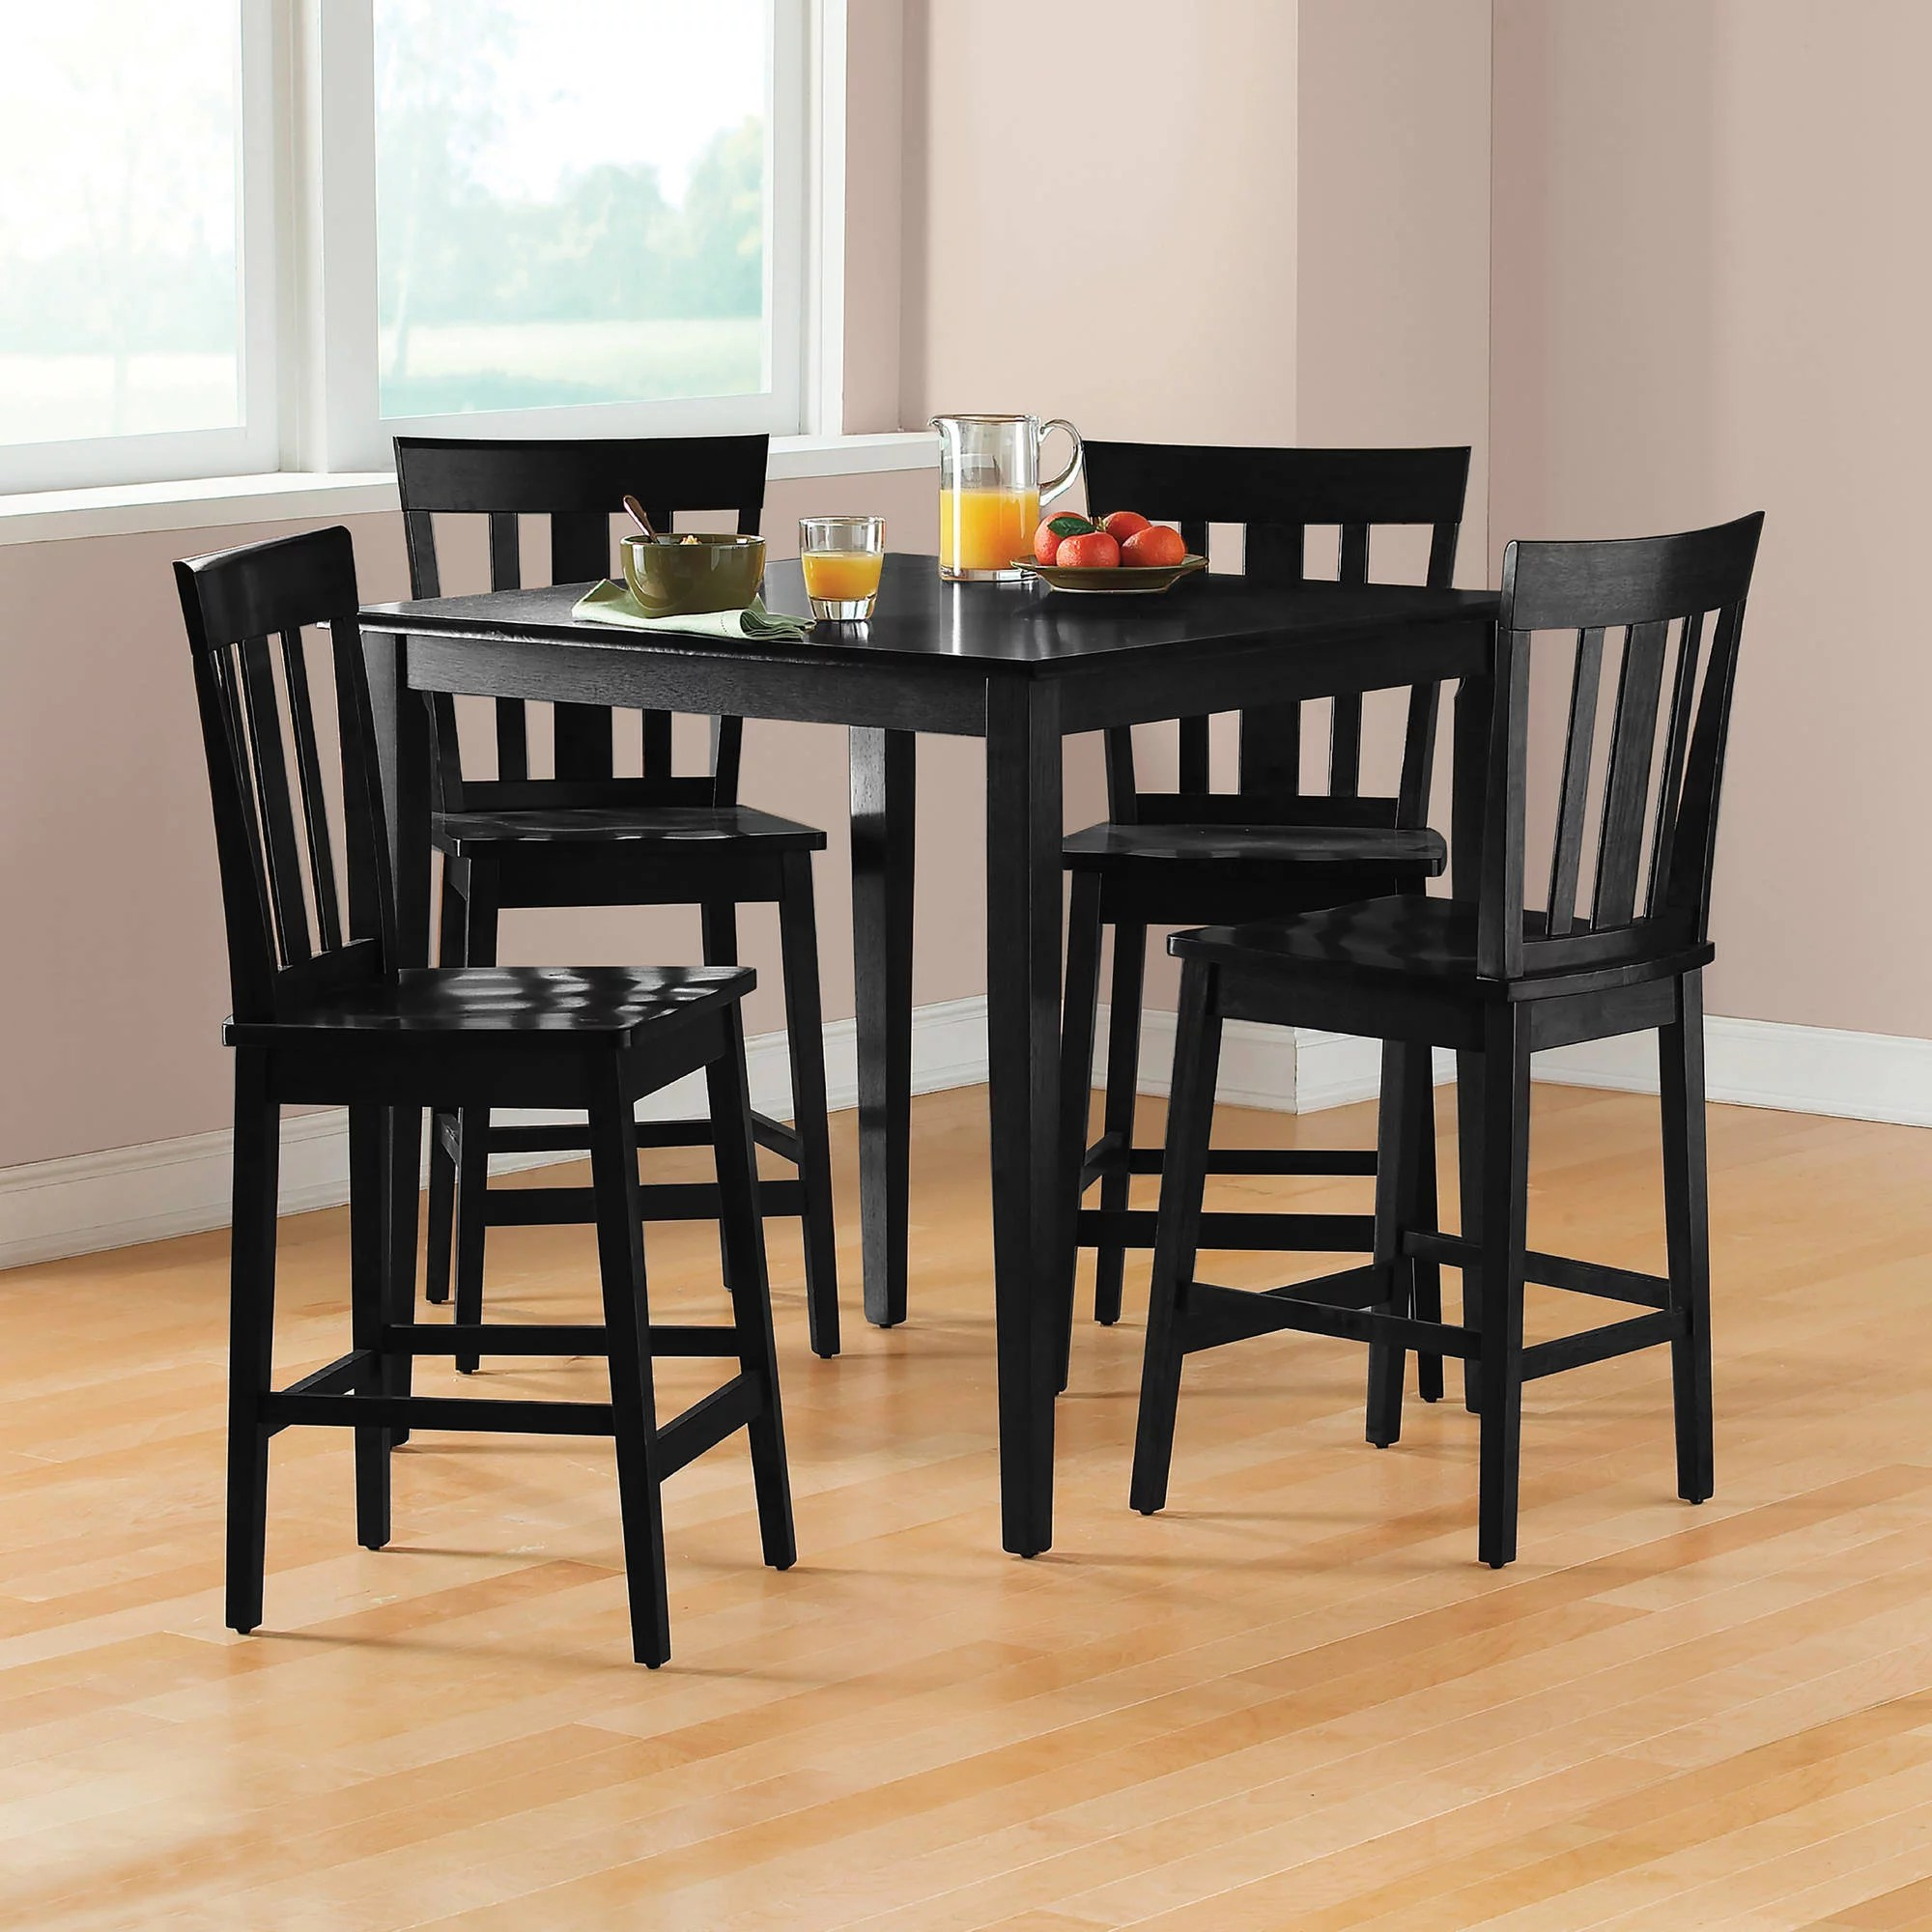 high table and chairs for kitchen chair alternatives mainstays 5 piece mission counter height dining set walmart com